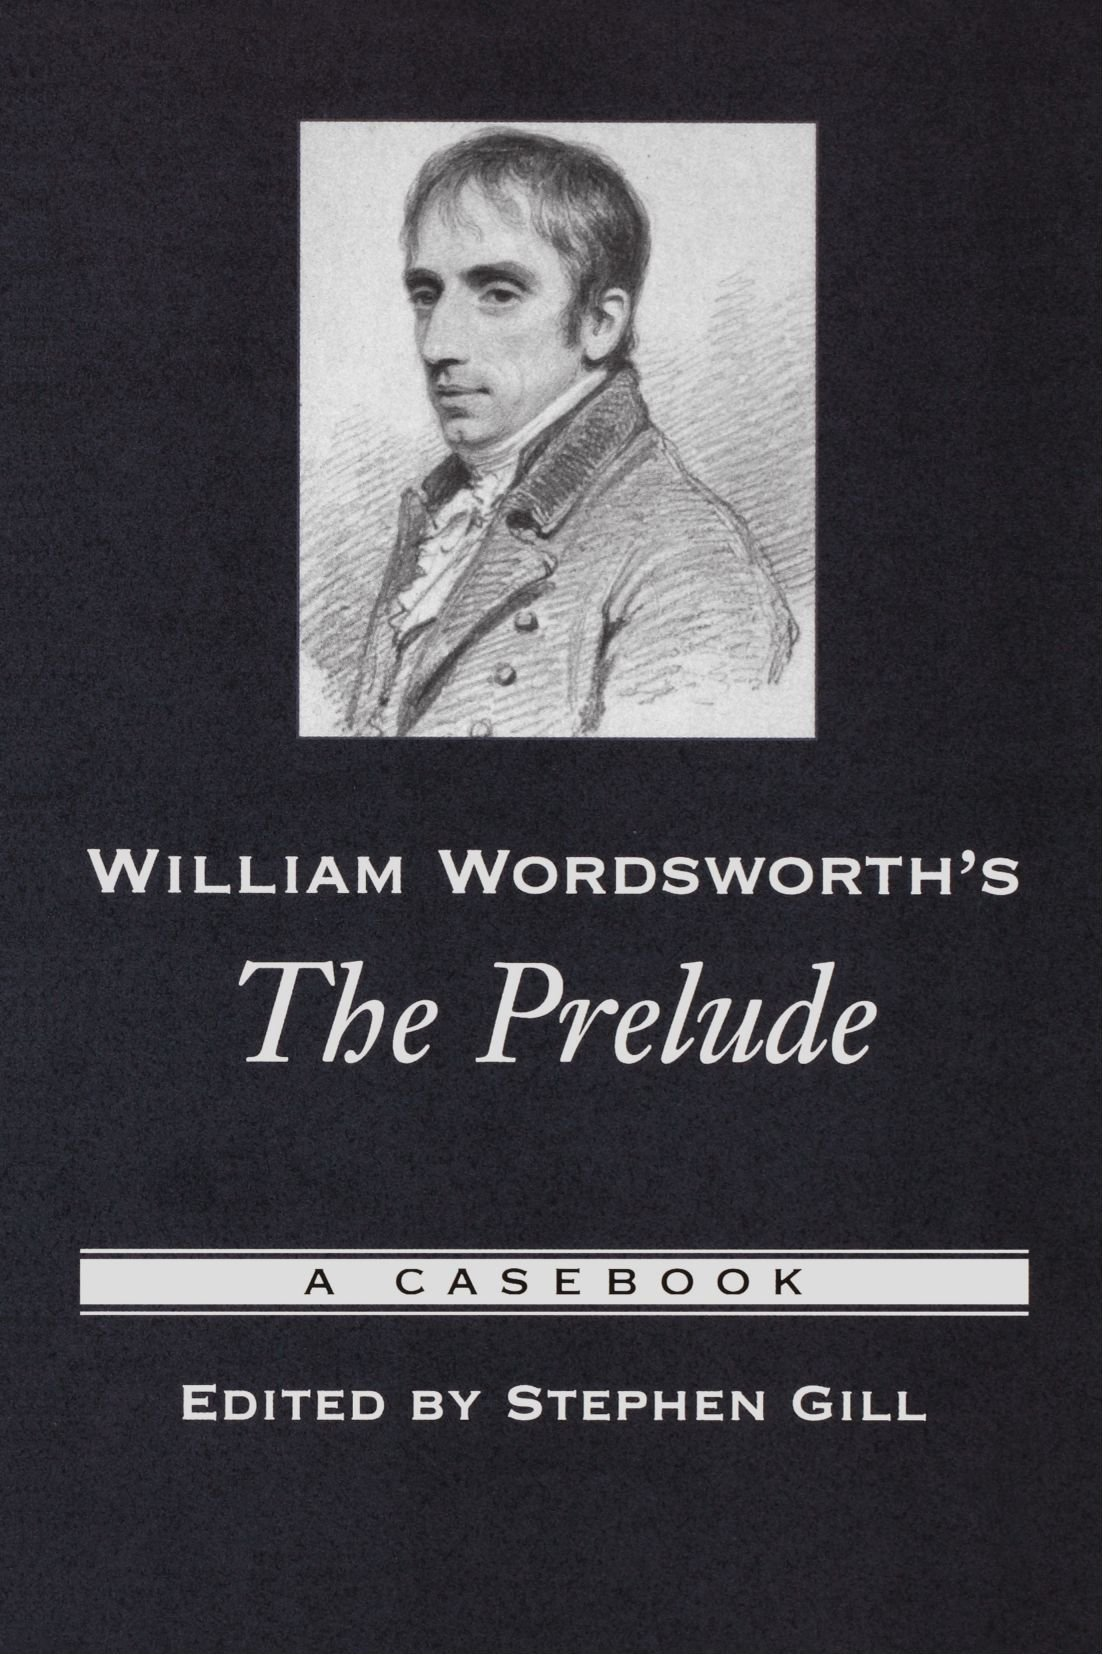 william wordsworth essay wordsworth s poetical works vol william  william wordsworth s the prelude a casebook casebooks in william wordsworth s the prelude a casebook